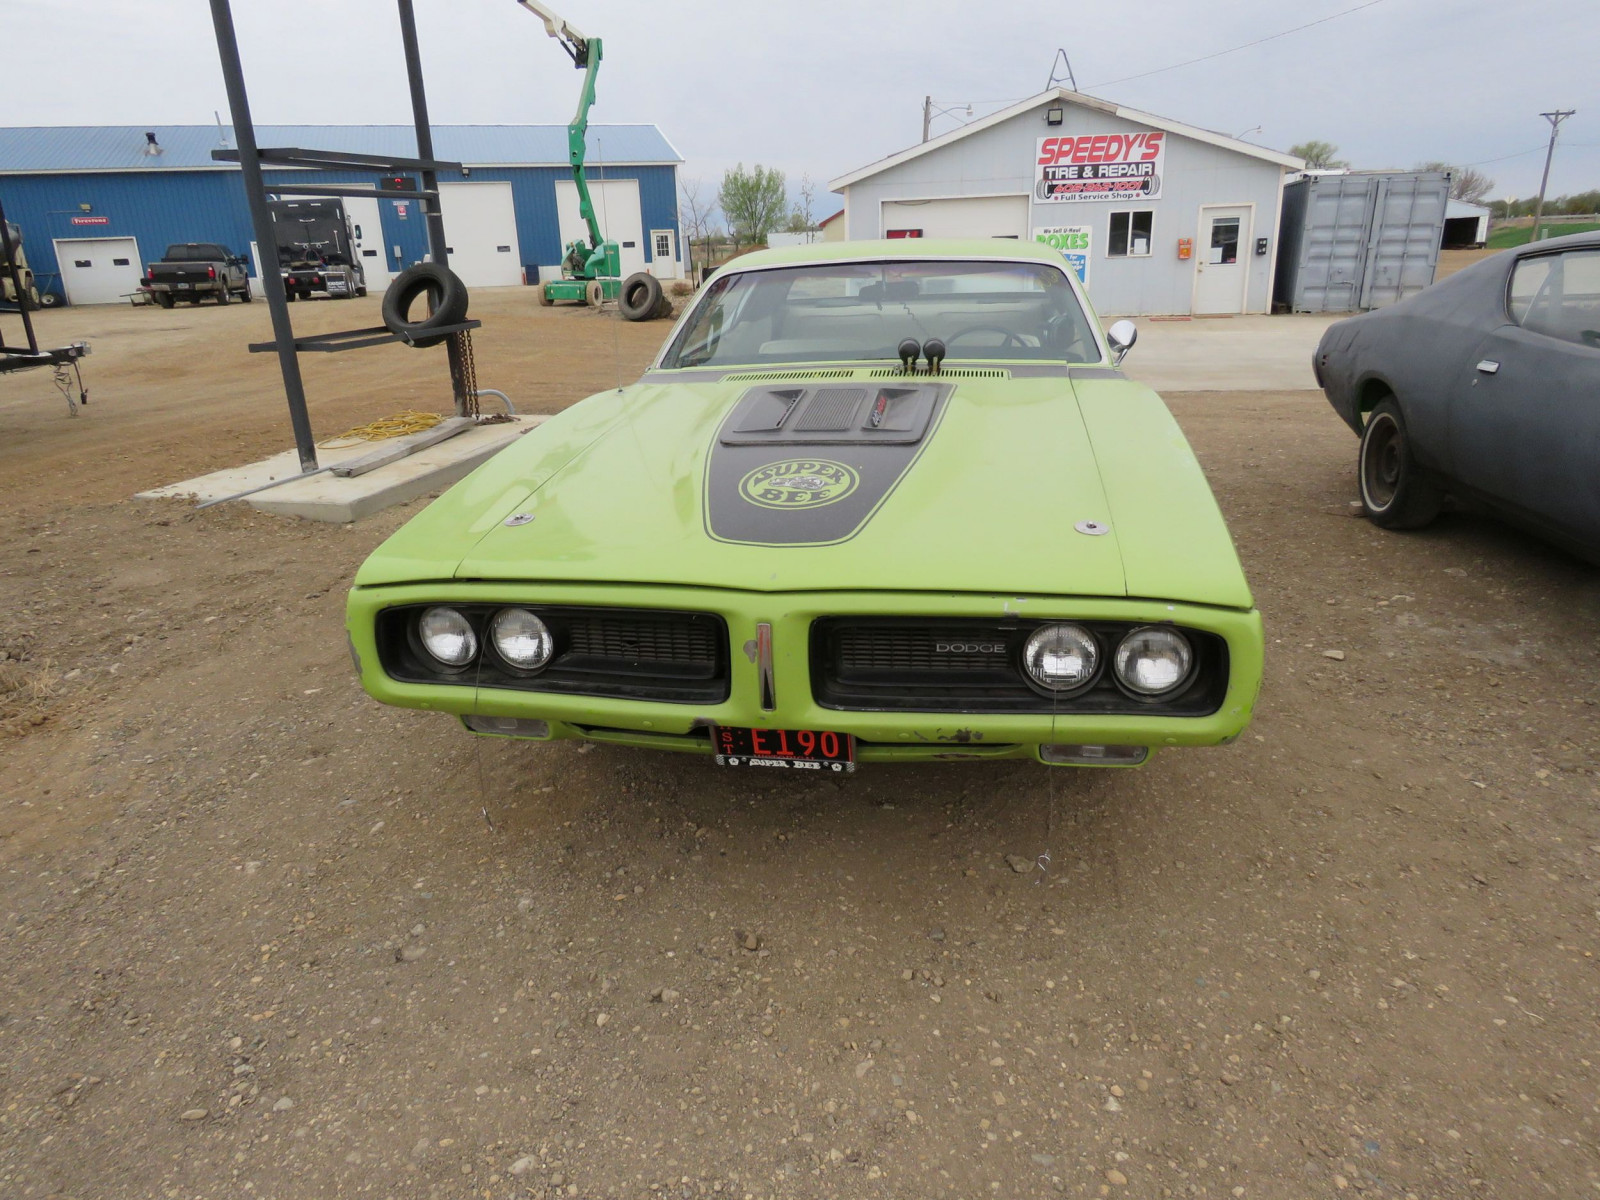 1971 Dodge Super Bee - Image 2